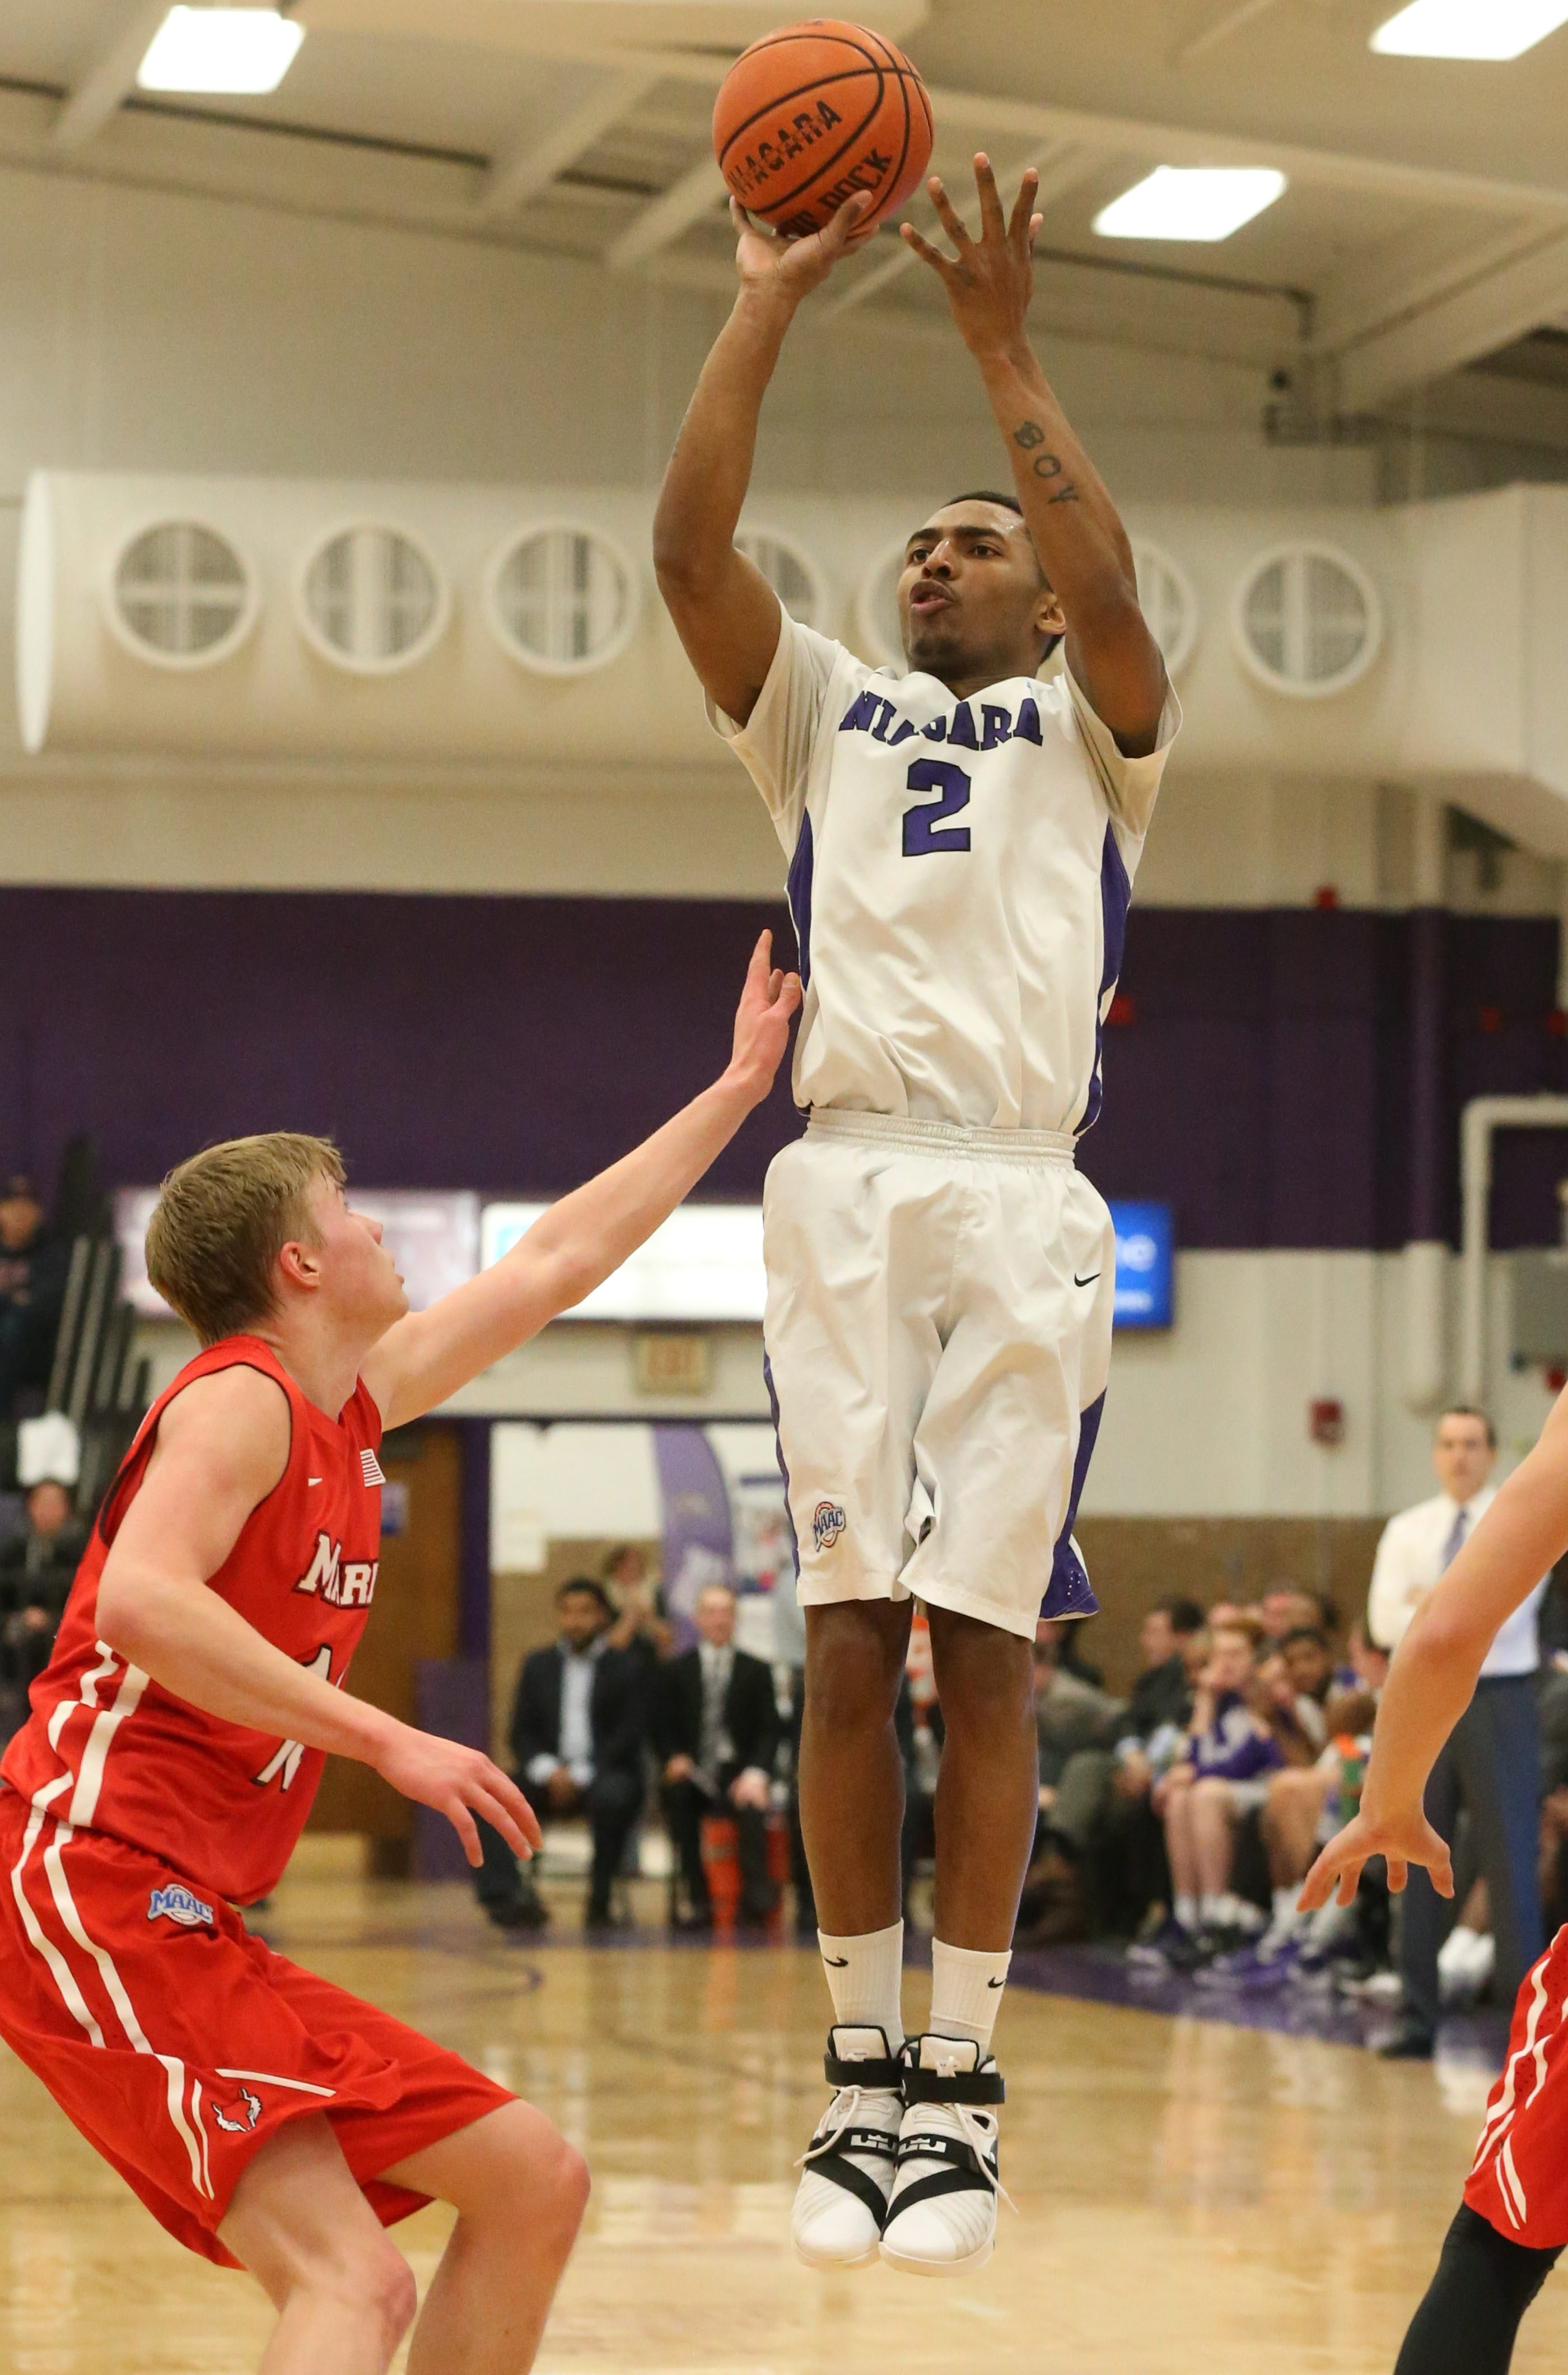 Niagara's Emile Blackman shoots over Marist's Kristinn Palsson in the first half at the Gallagher Center on Thursday.